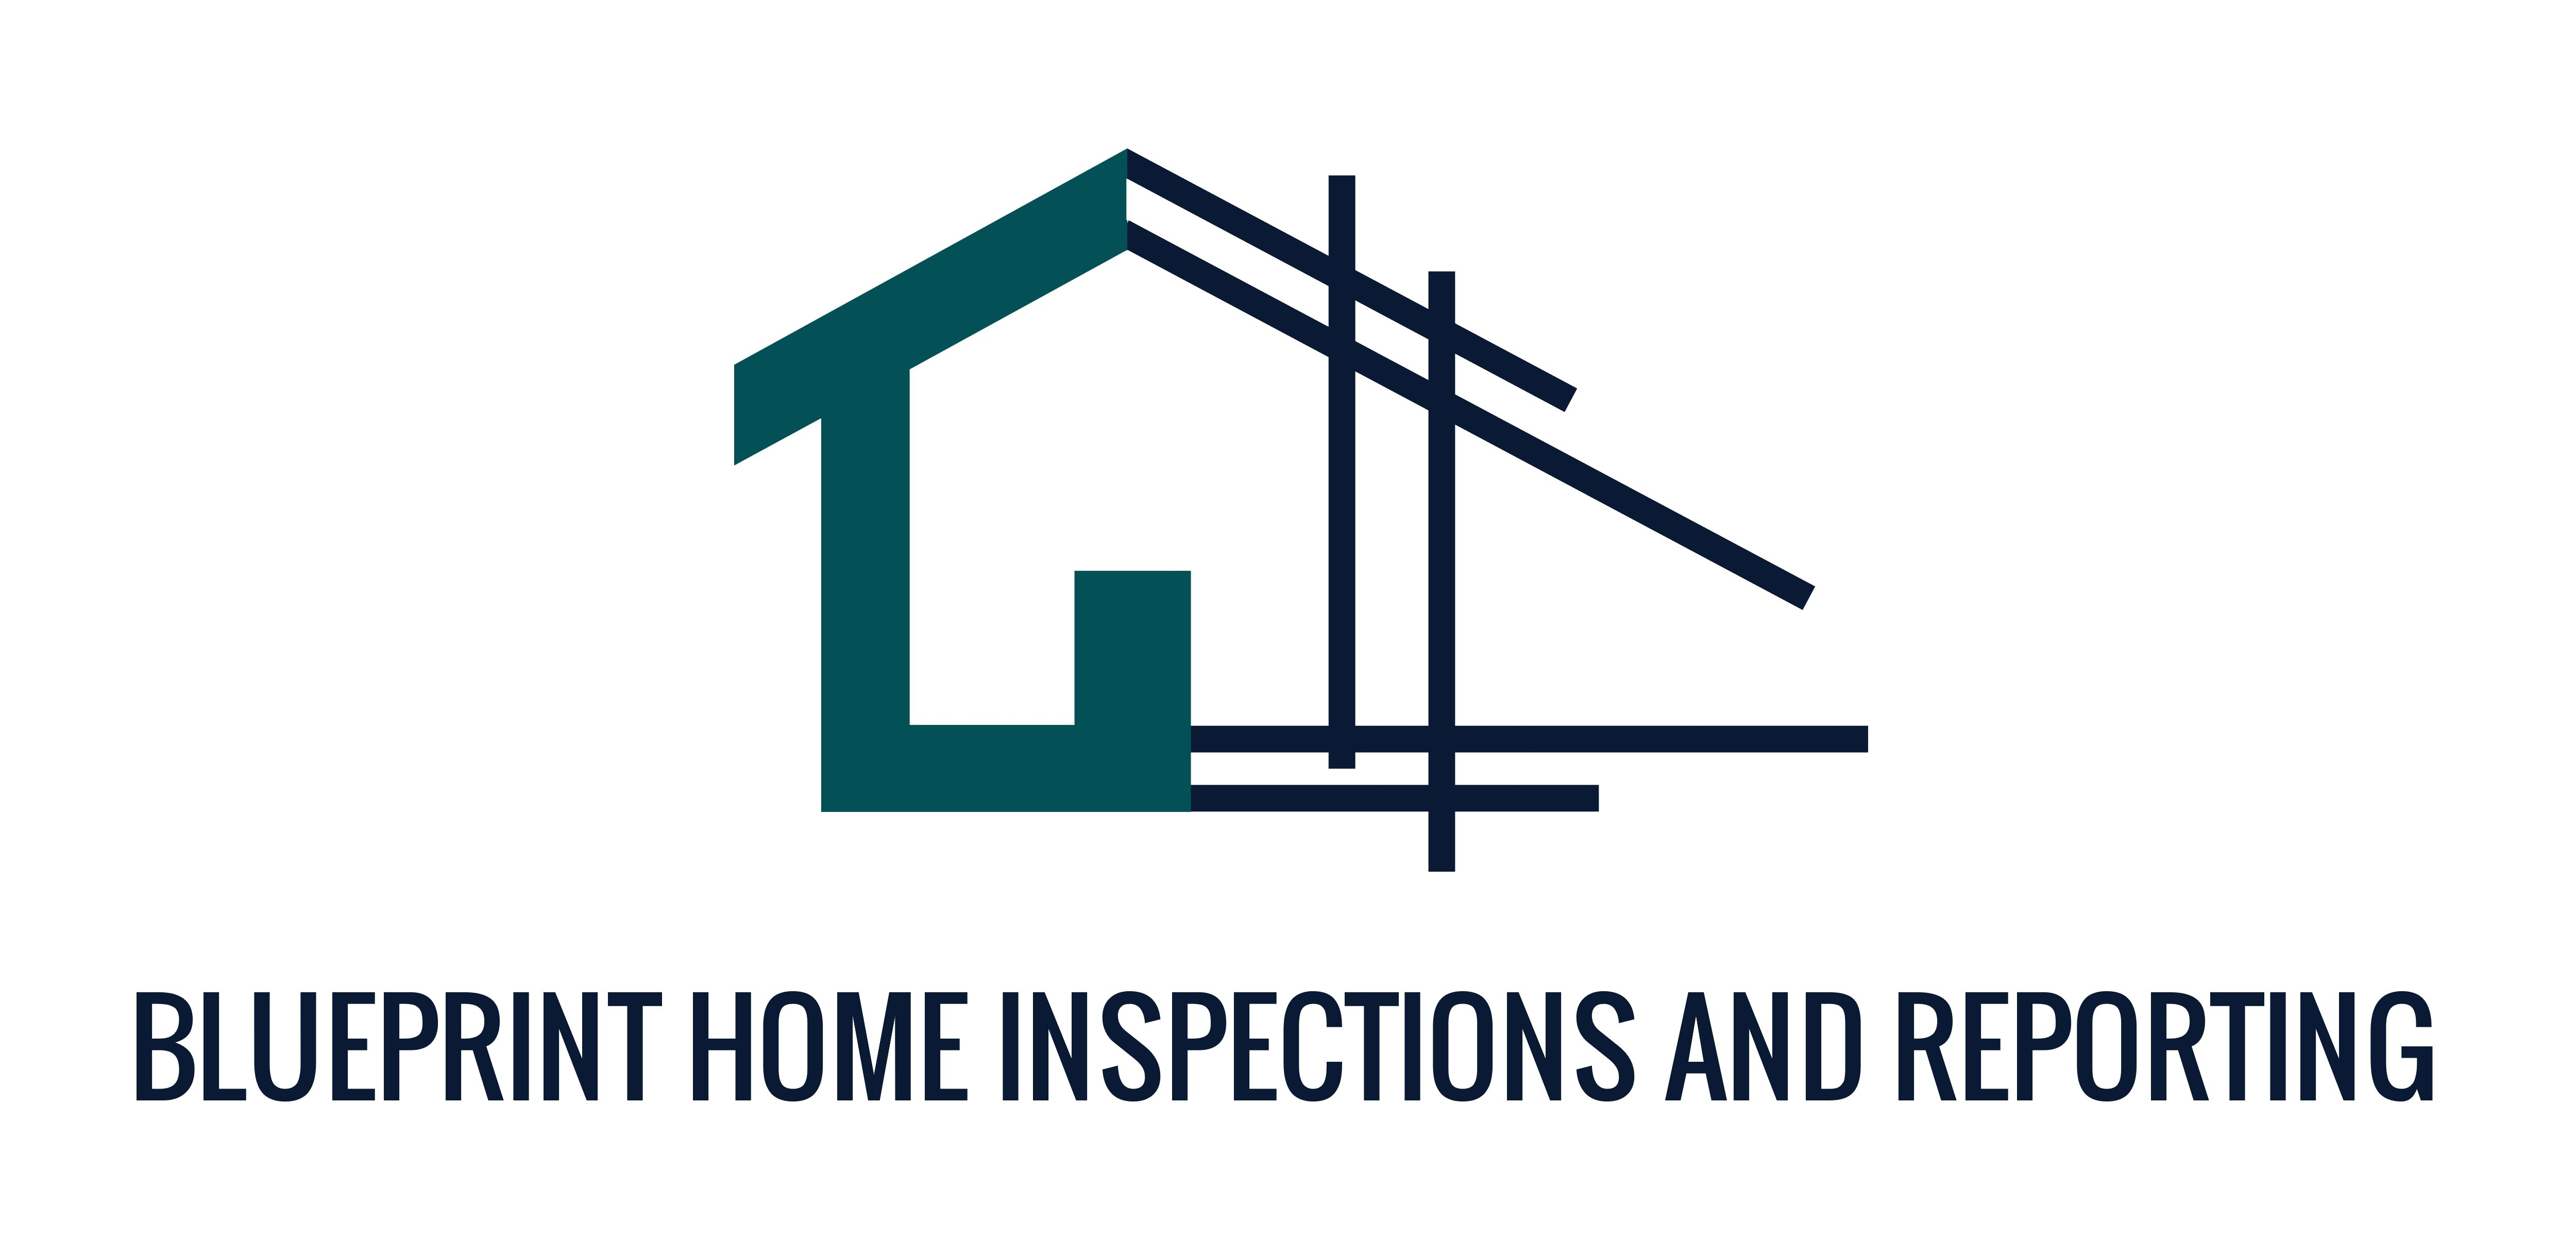 Bluprint Home Inspections